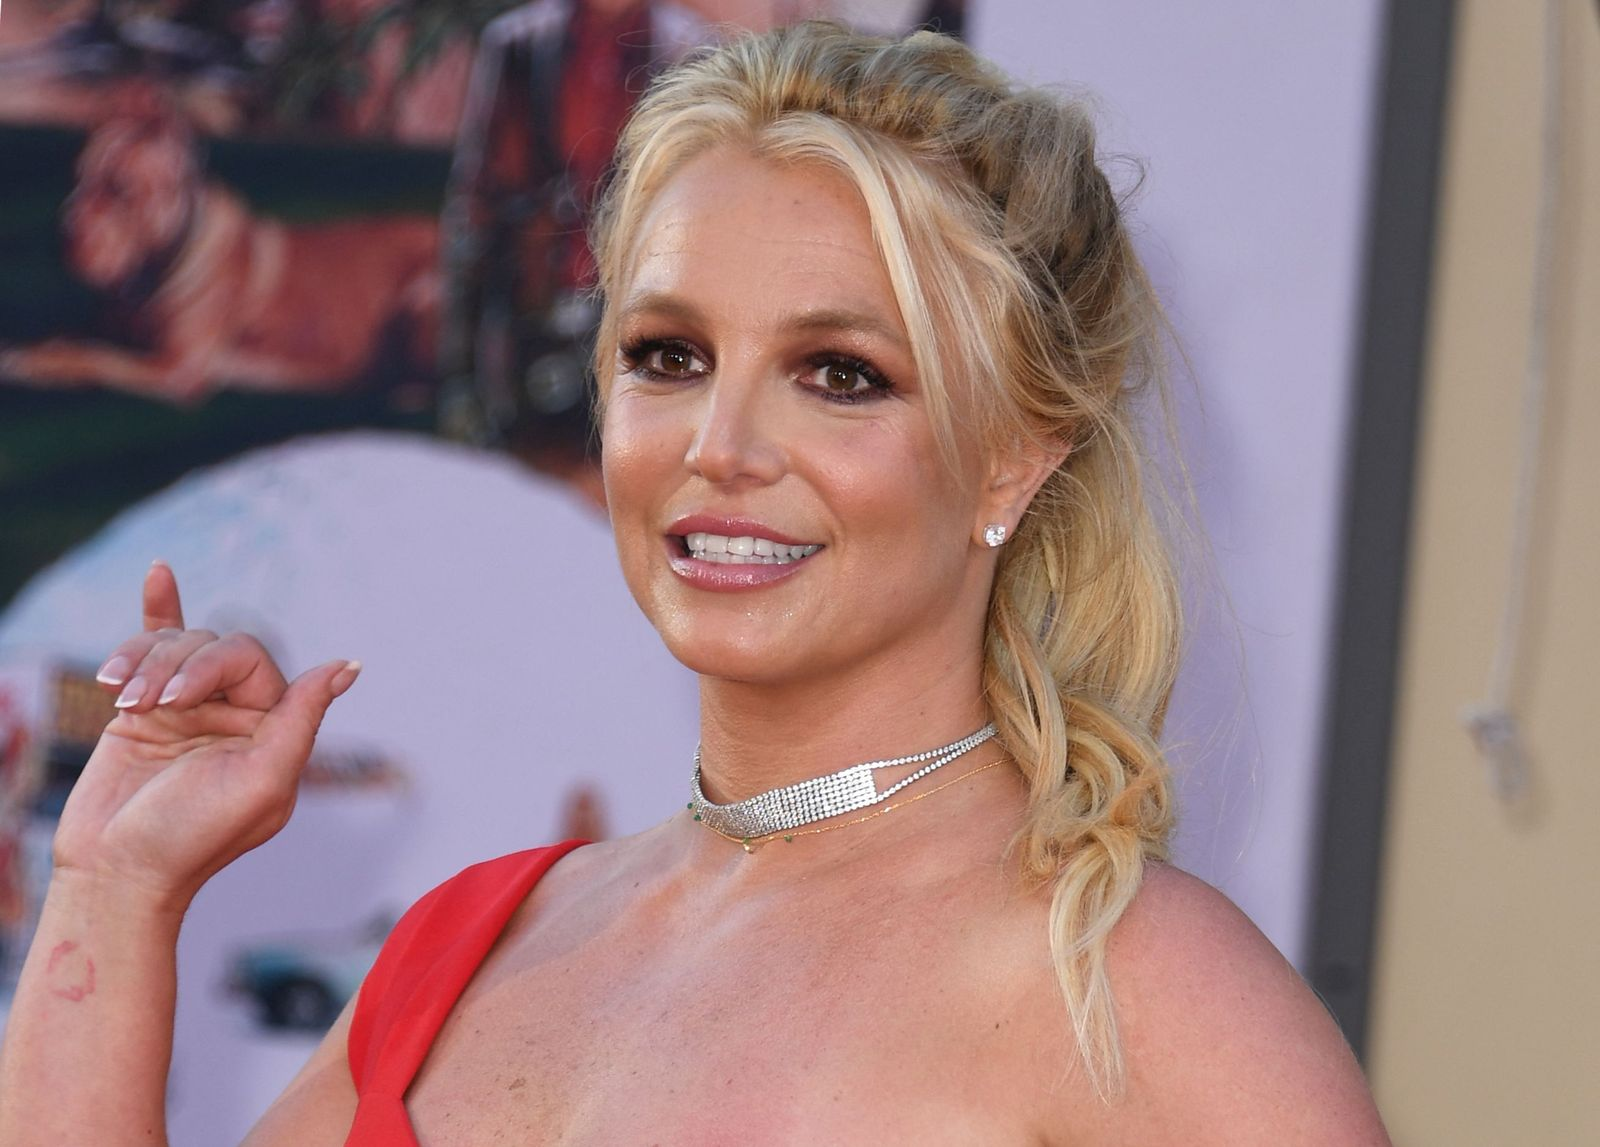 FILES-US-ENTERTAINMENT-MUSIC-CELEBRITY-SPEARS